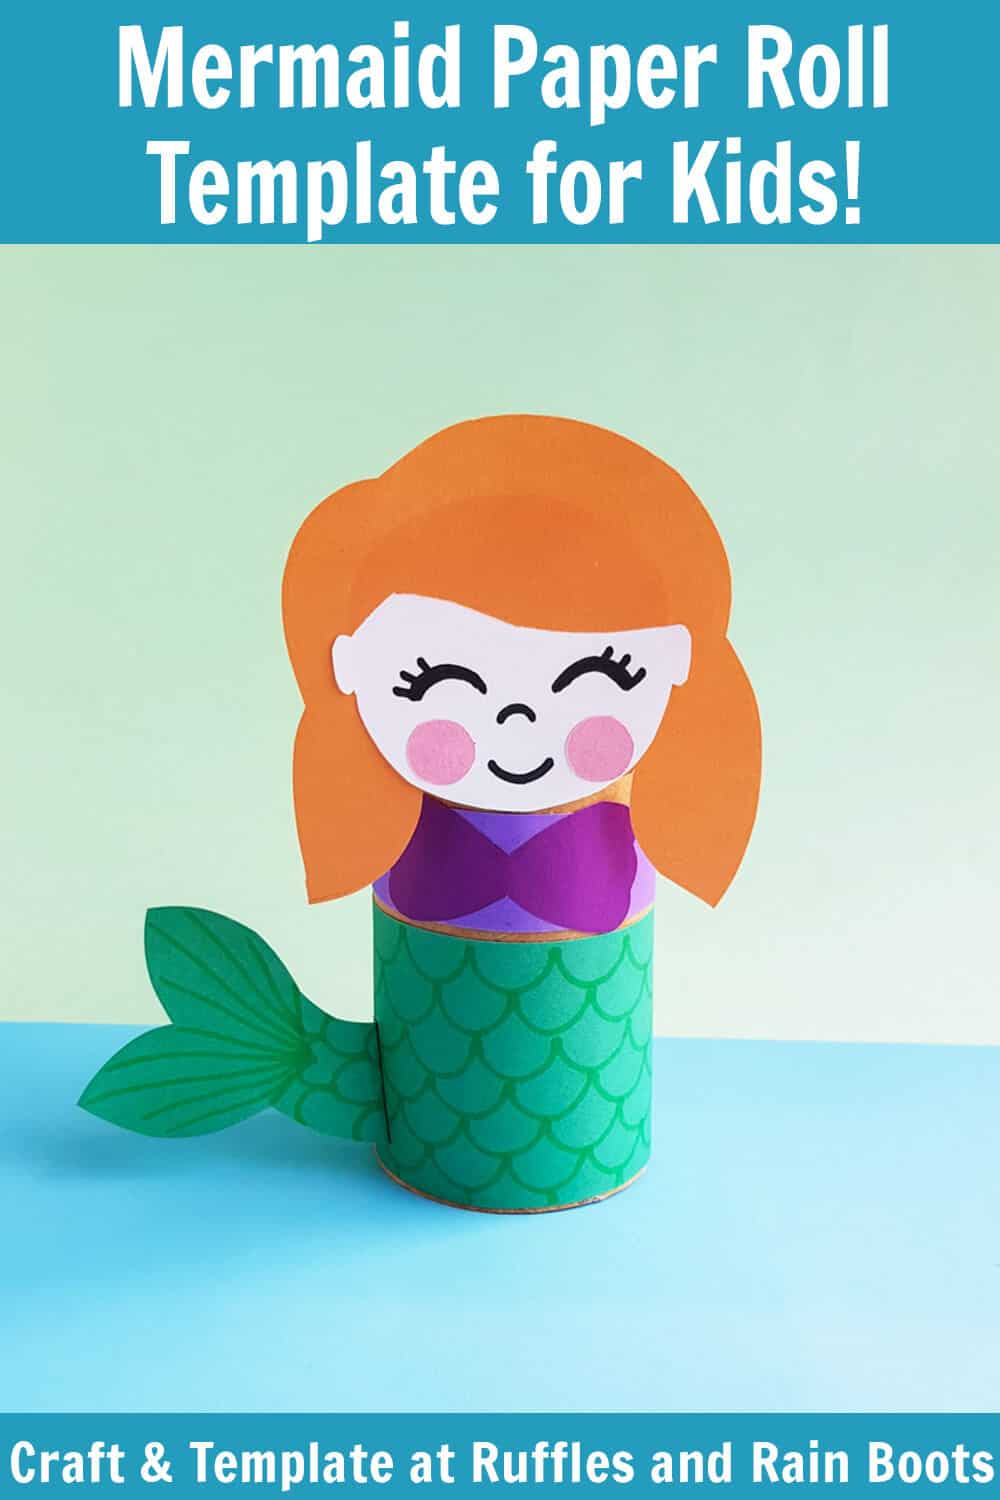 Pin Image of The Little Mermaid Craft on a light blue and green background with a Teal block that says mermaid paper roll template for kids